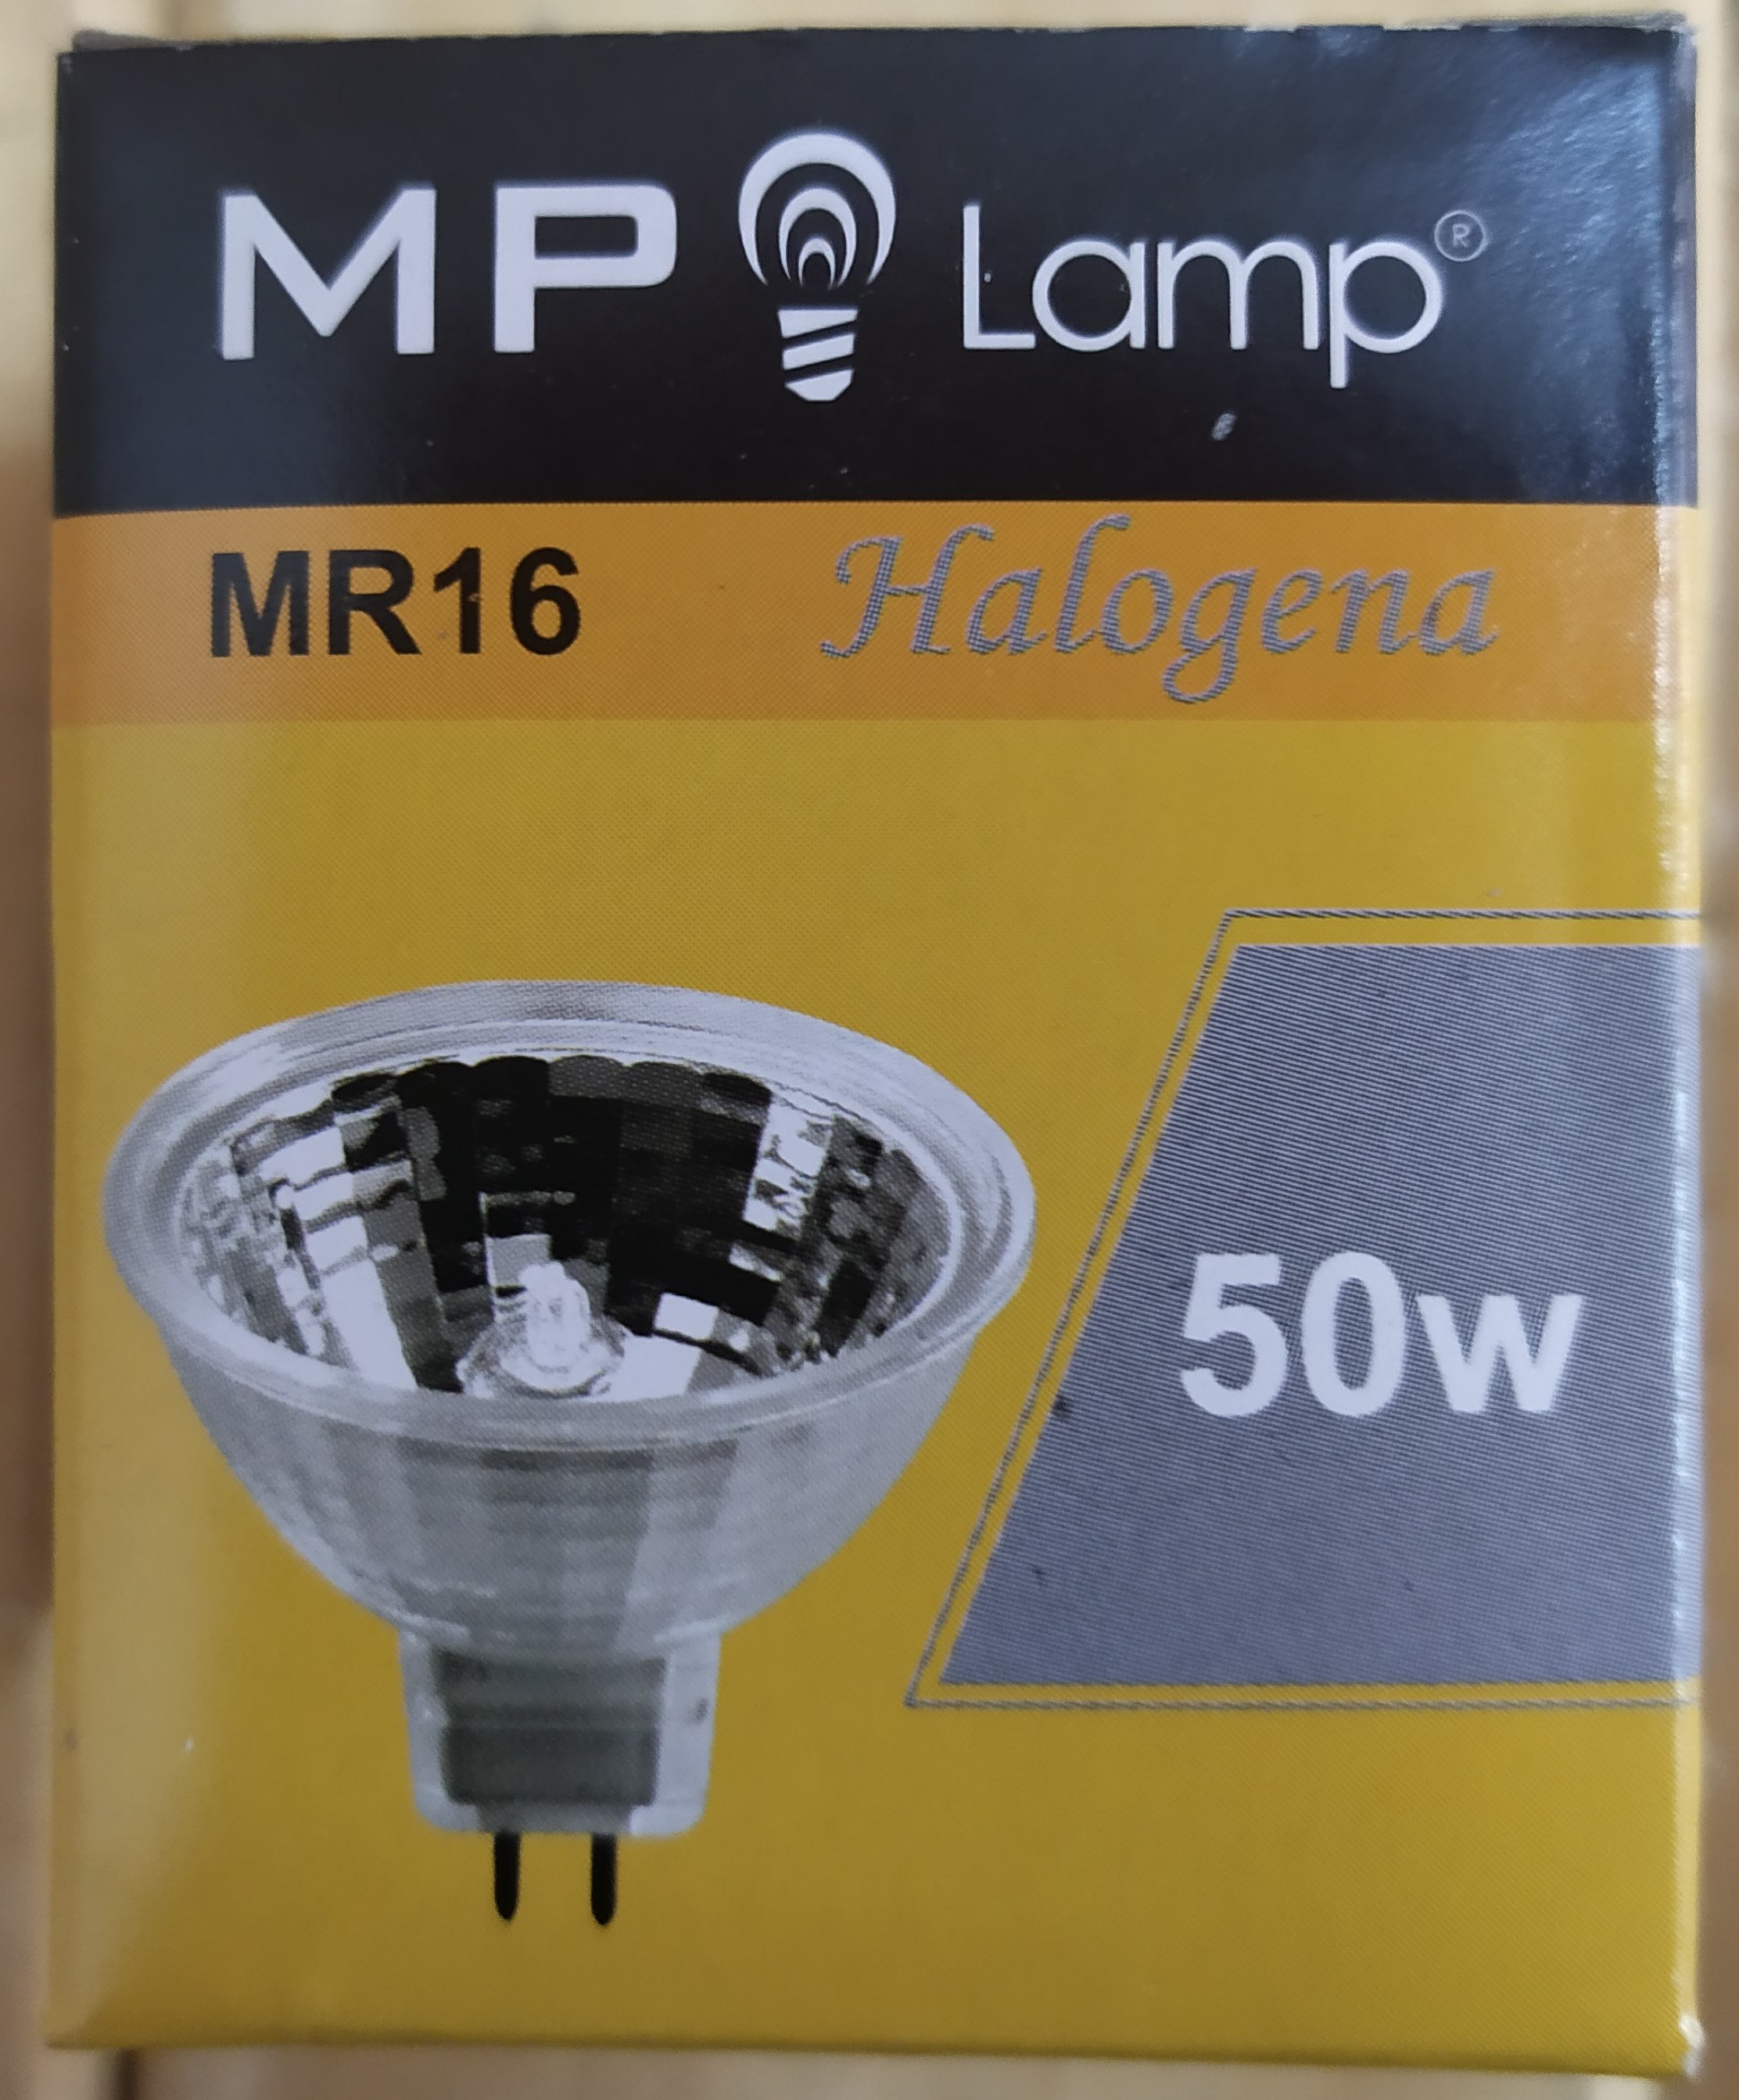 E16 LAMPARA DICROICA HALOGENA 50W-12V MP